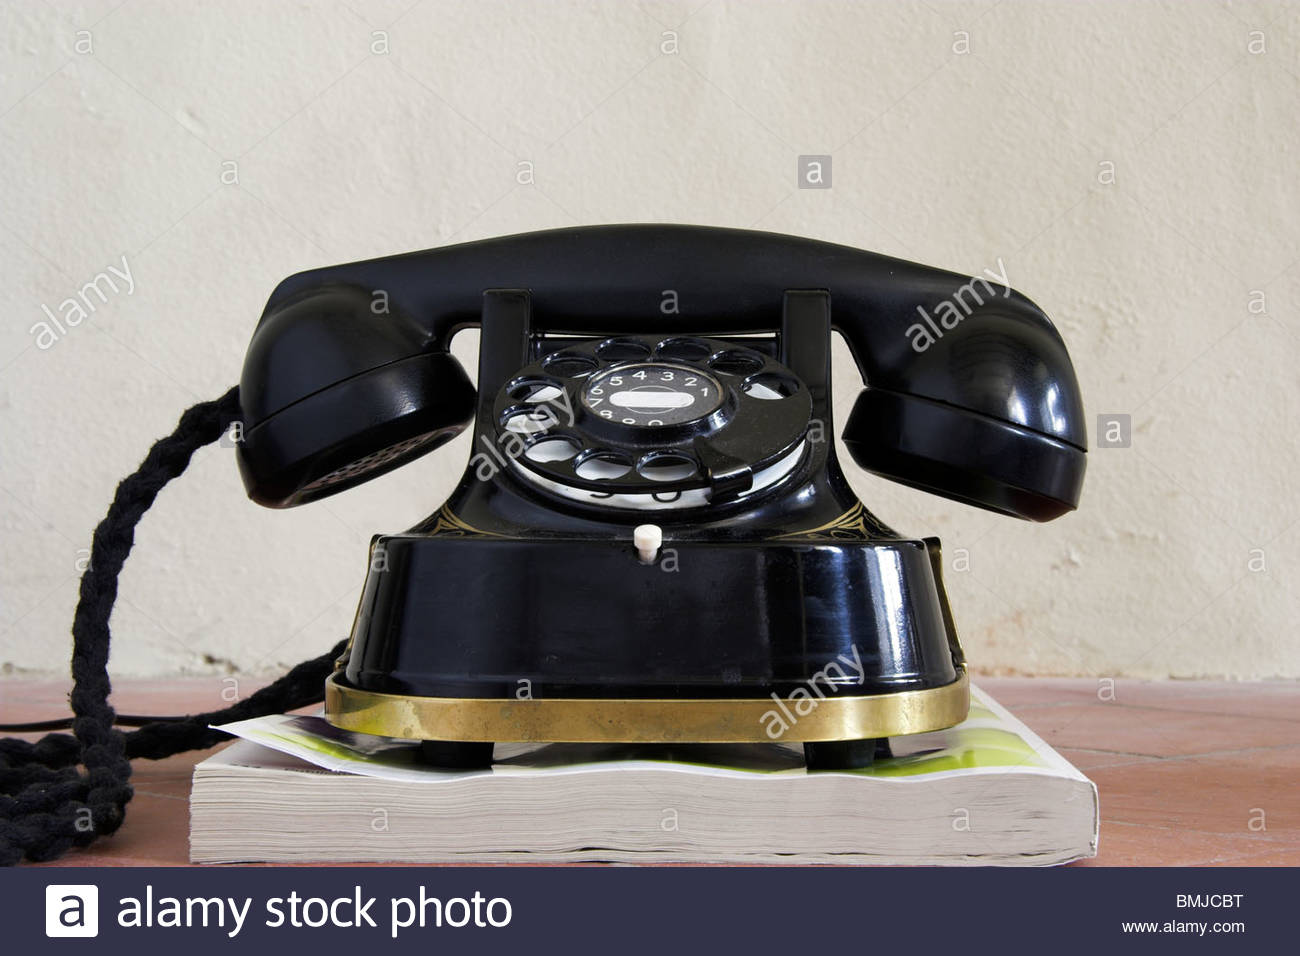 An old Bakelite telephone on a phone book directory, UK. - Stock Image